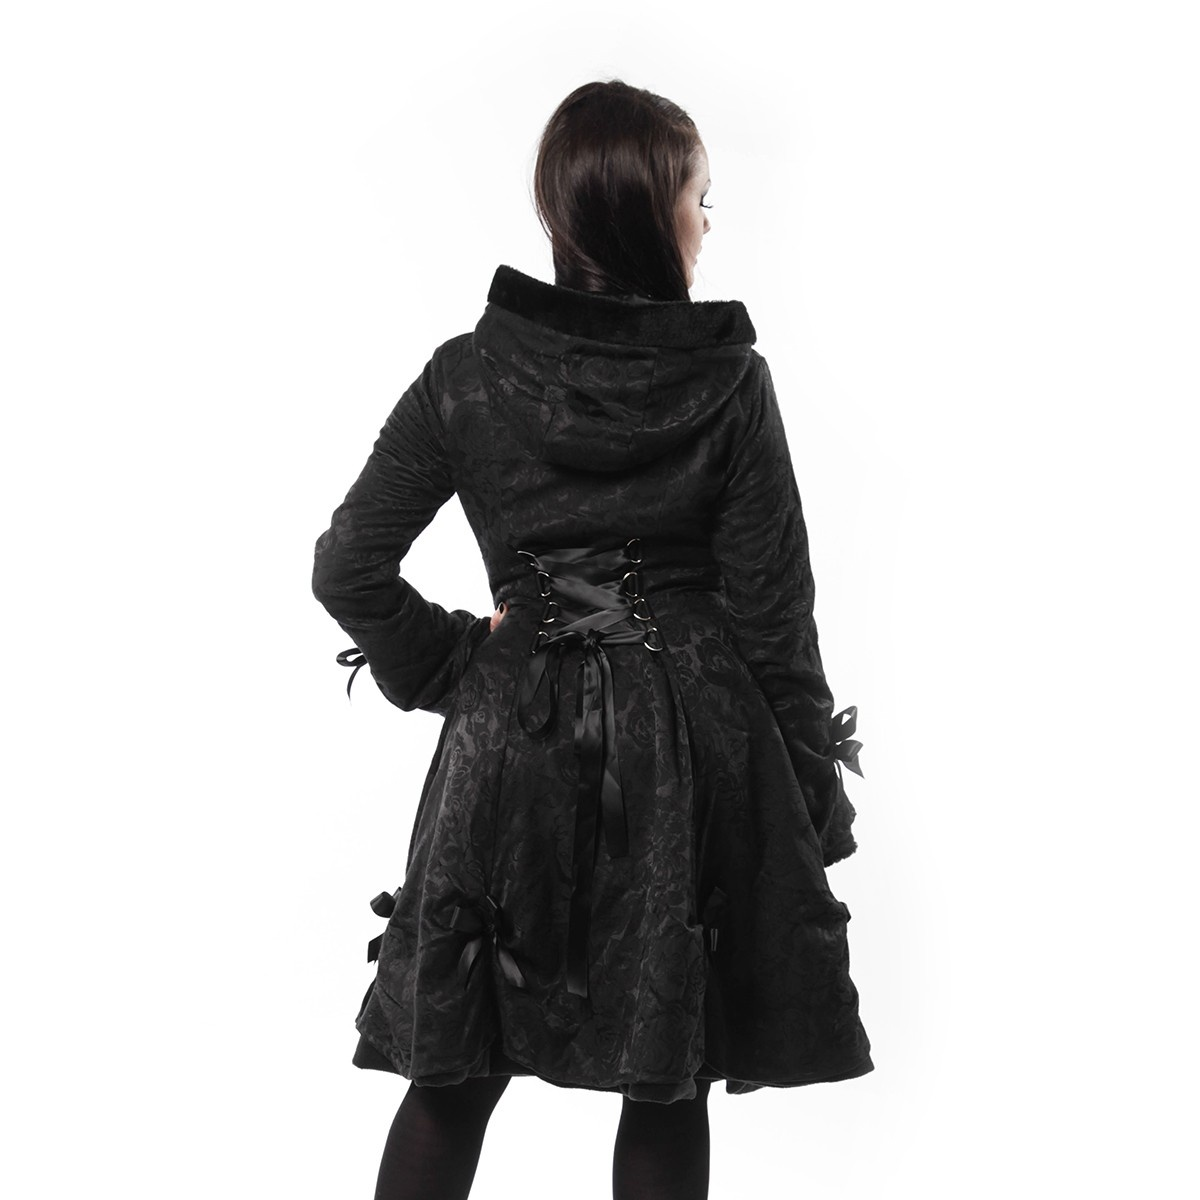 rebelsmarket_alice_coat_black_rose_poizen_industries_coats_3.jpg